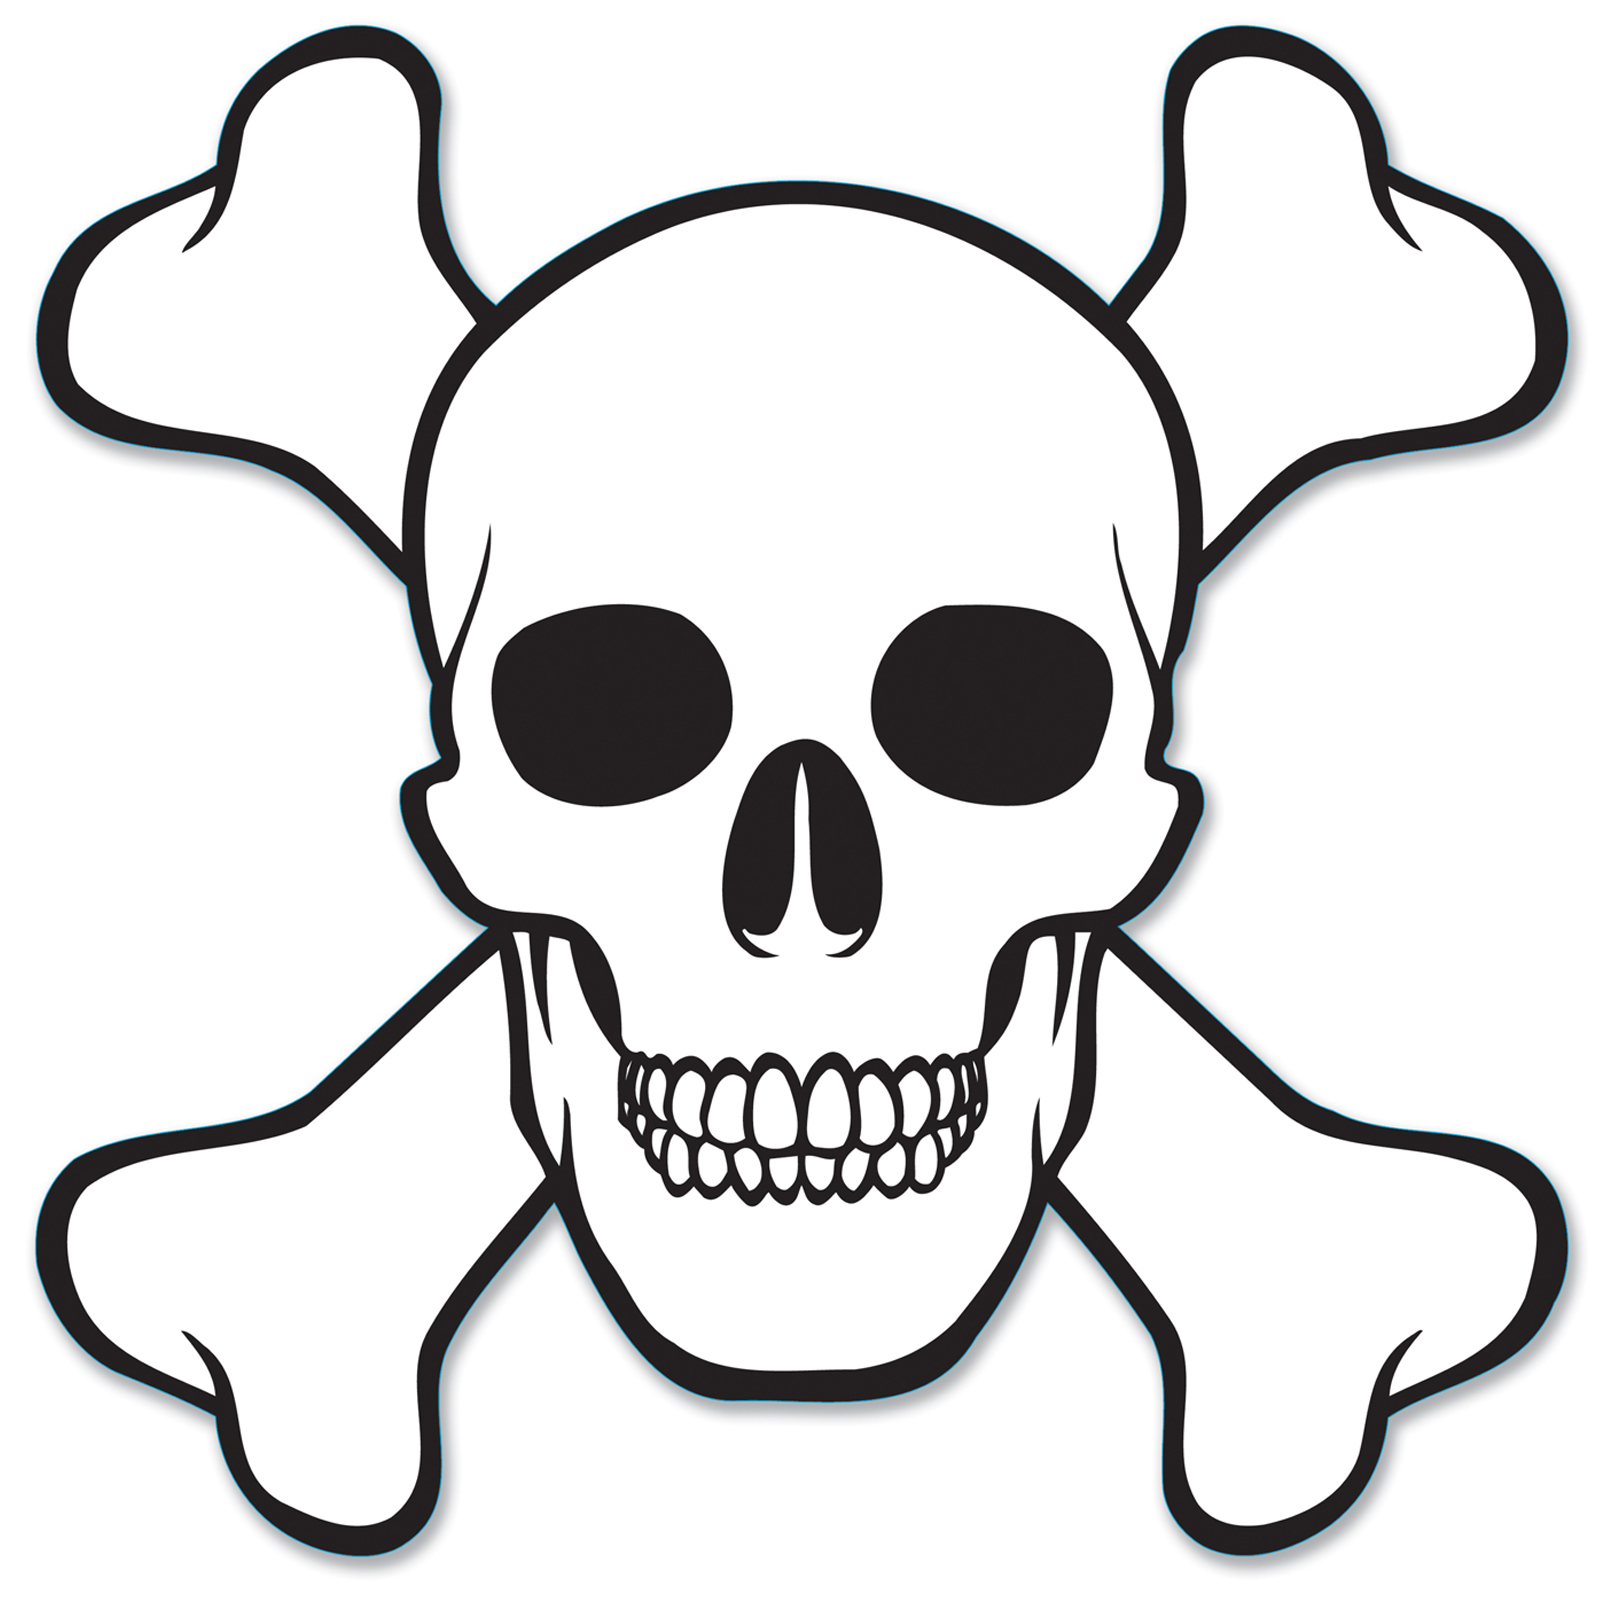 1600x1600 Simple Skull Clipart Collection